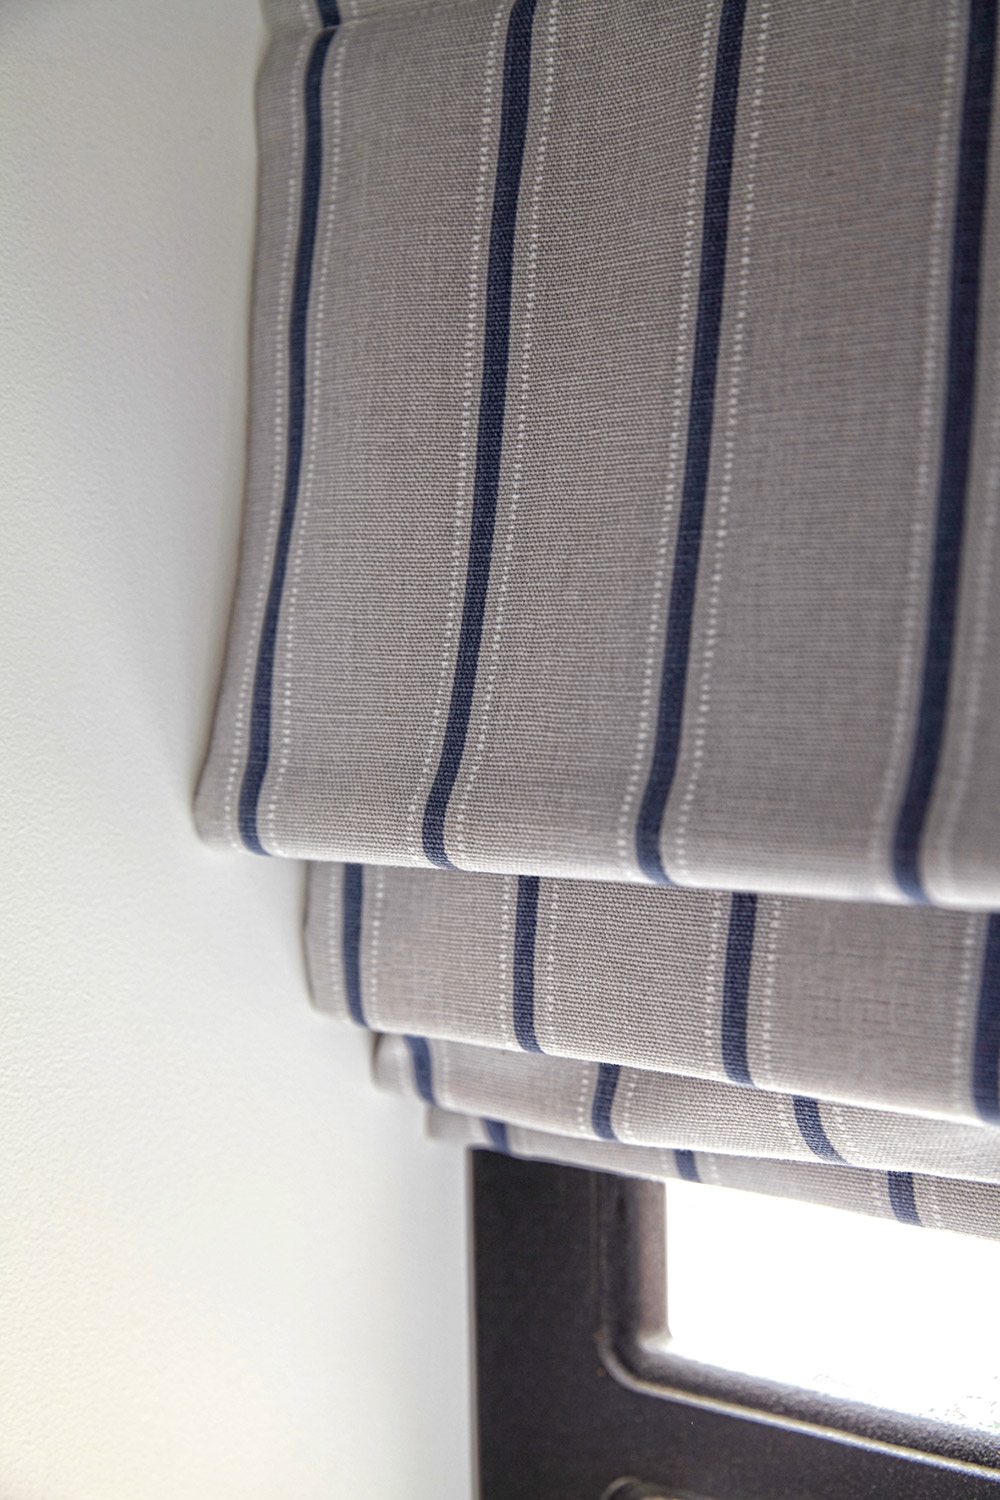 Roman Blinds Apollo Blinds Venetian Vertical Roman Roller Throughout Striped Roman Blinds (Image 10 of 15)